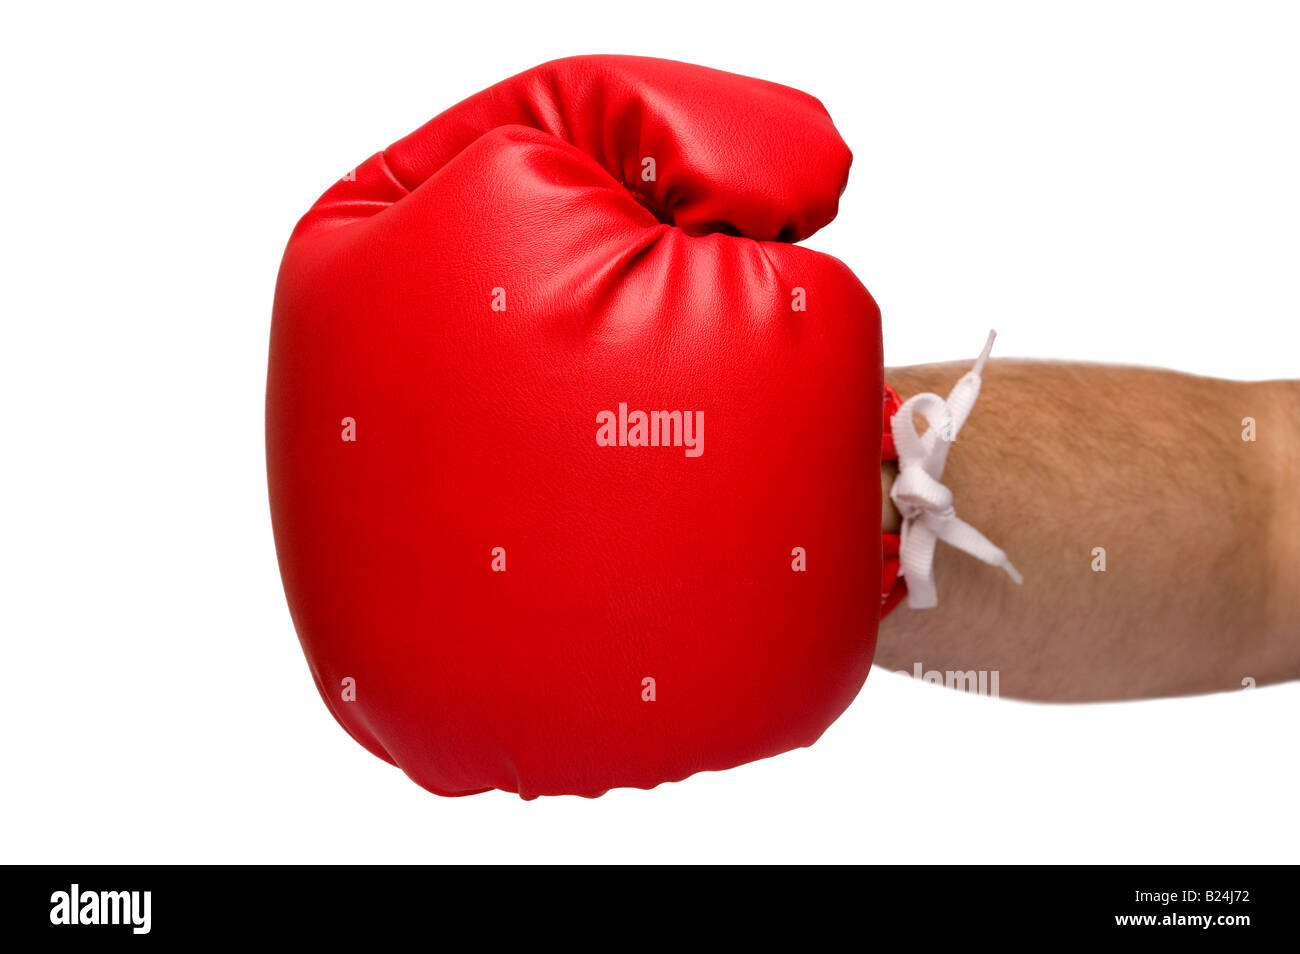 Red leather boxing glove delivering a punch shallow depth of field with focus on the glove on a white background - Stock Image